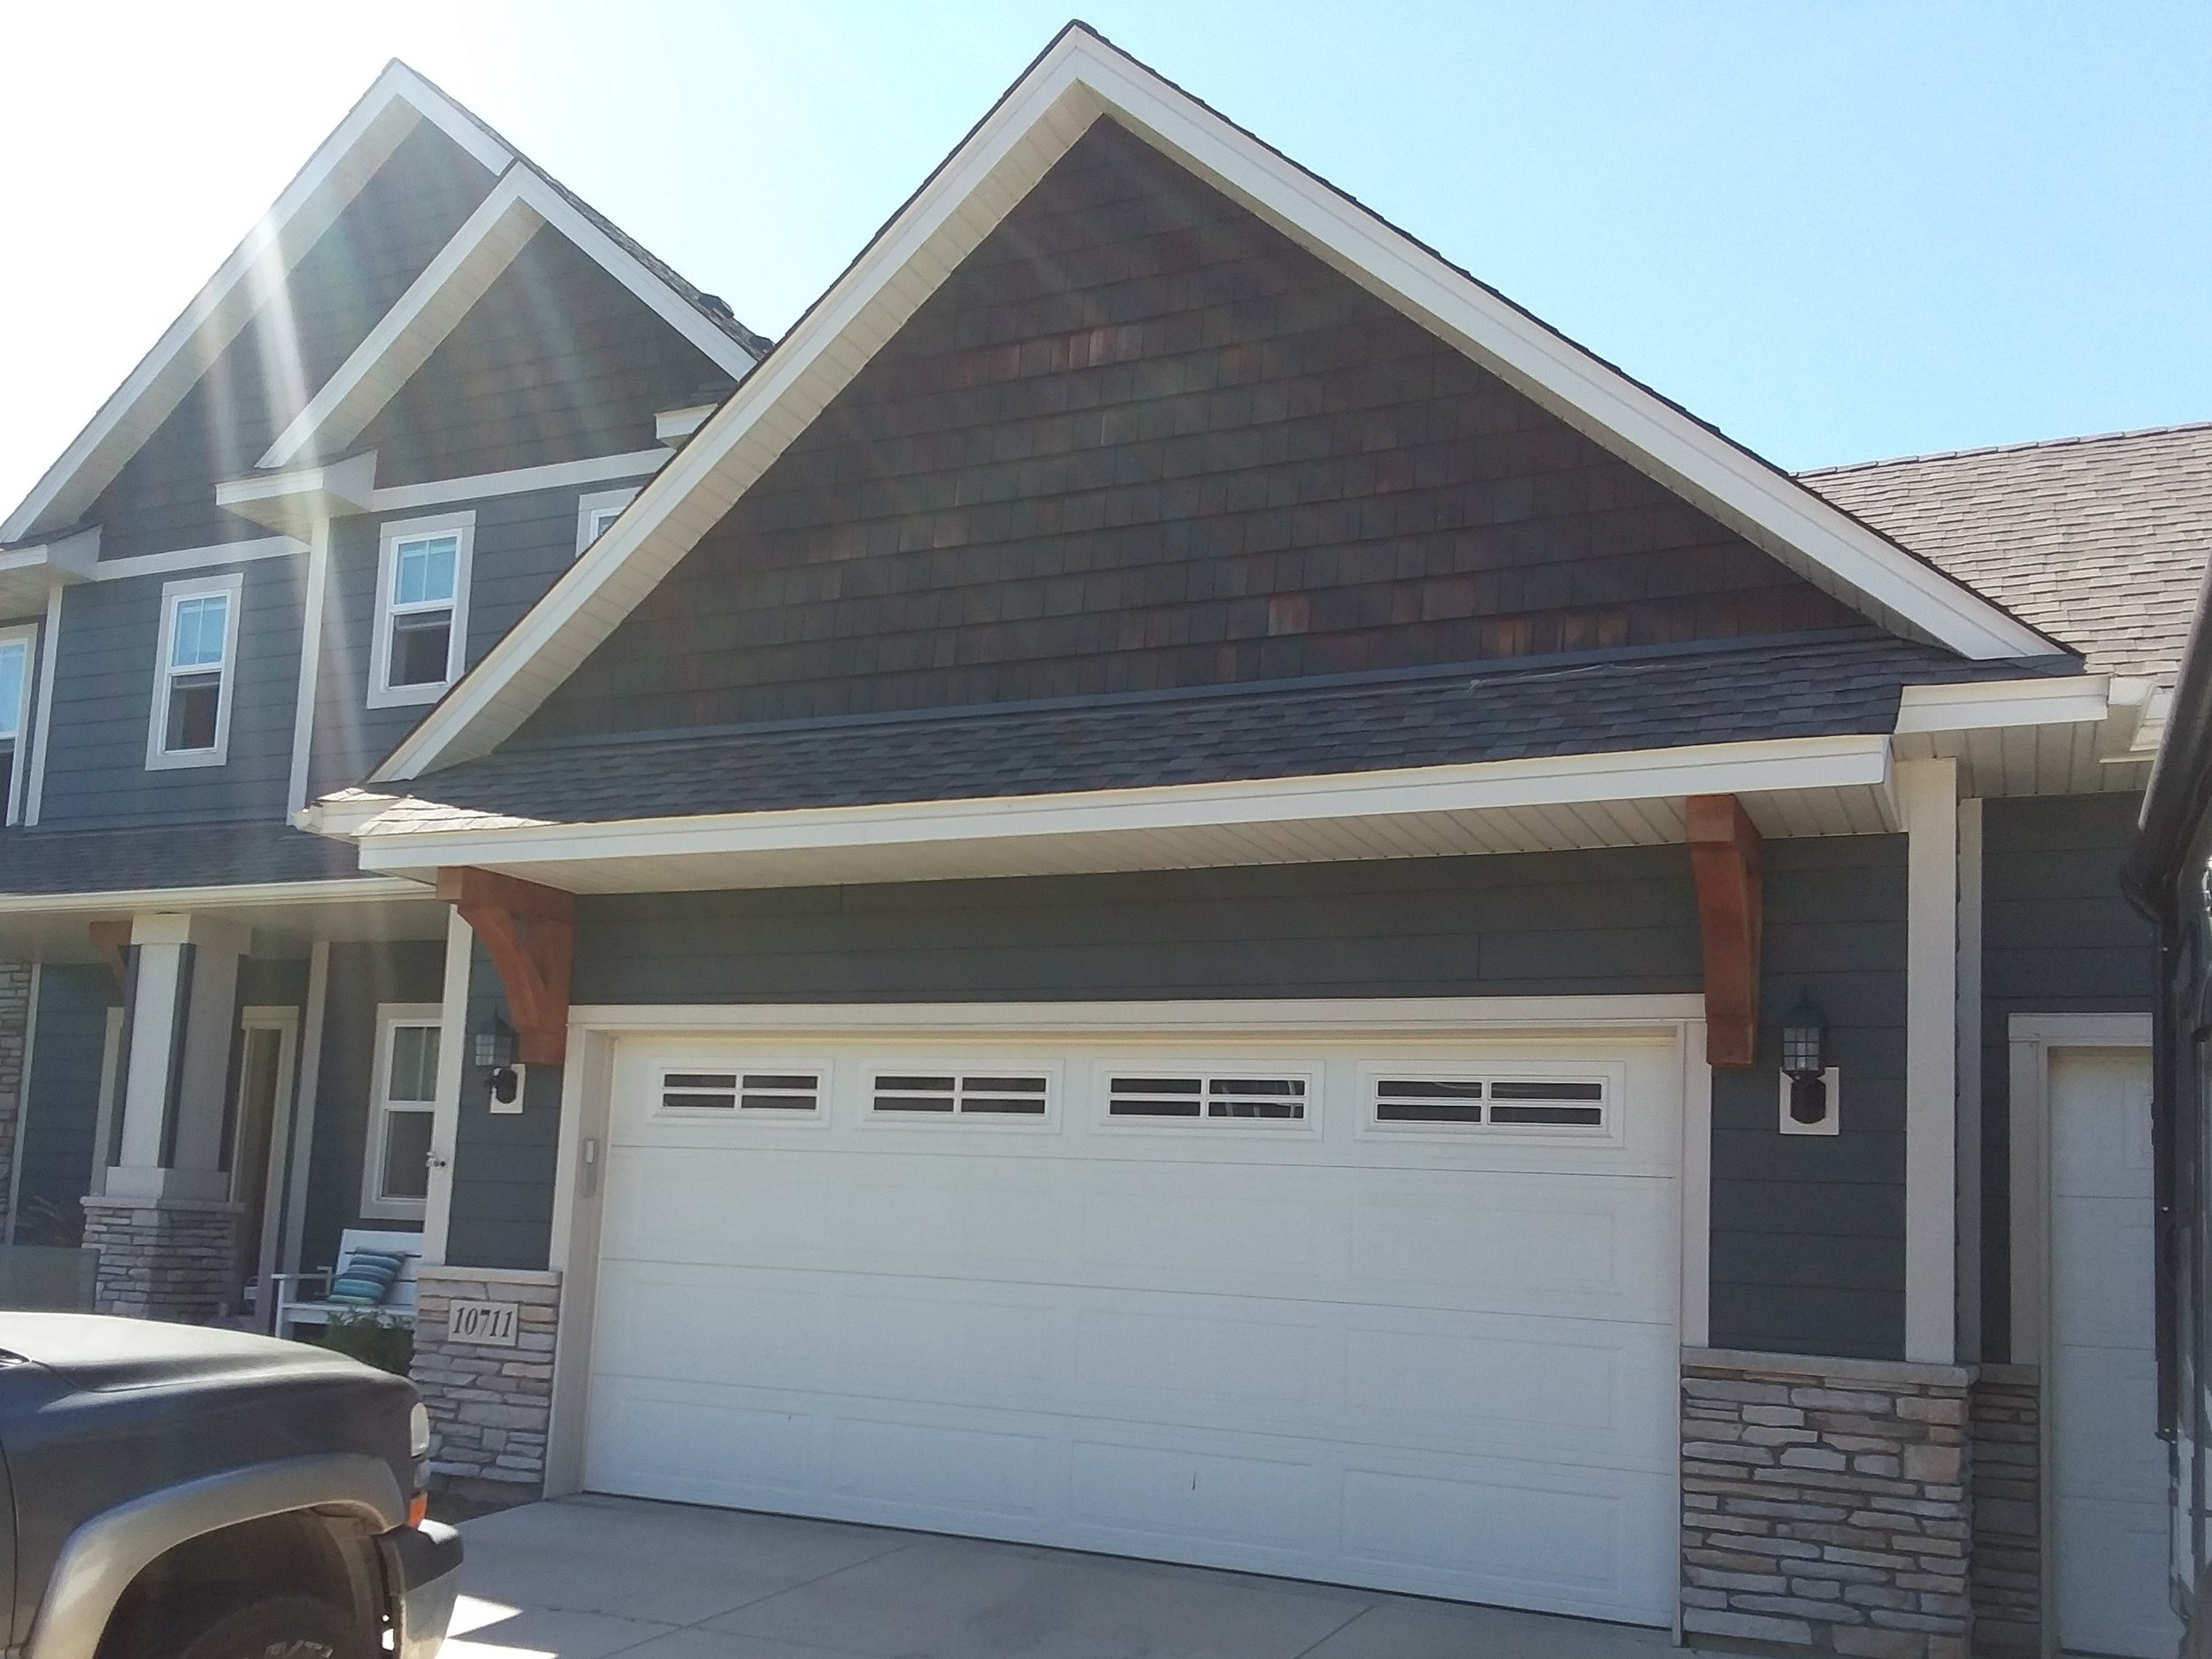 Bitz-Exteriors-GAF-timberline-roofing-and-siding-installation.jpg